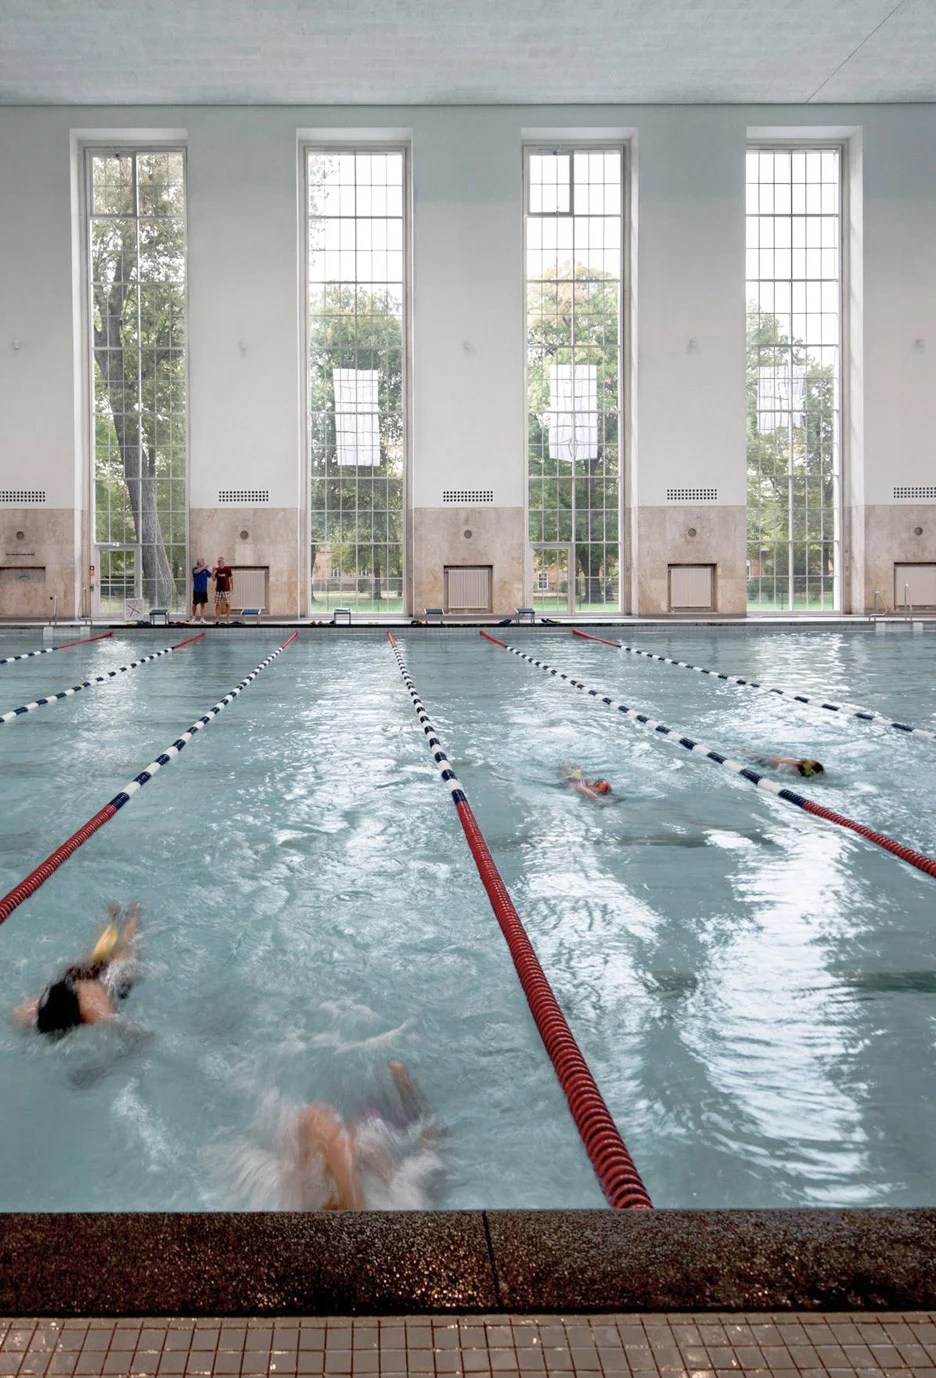 Swimmingpool Berlin Veauthier Meyer Architects Renovates Nazi Era Swimming Pool